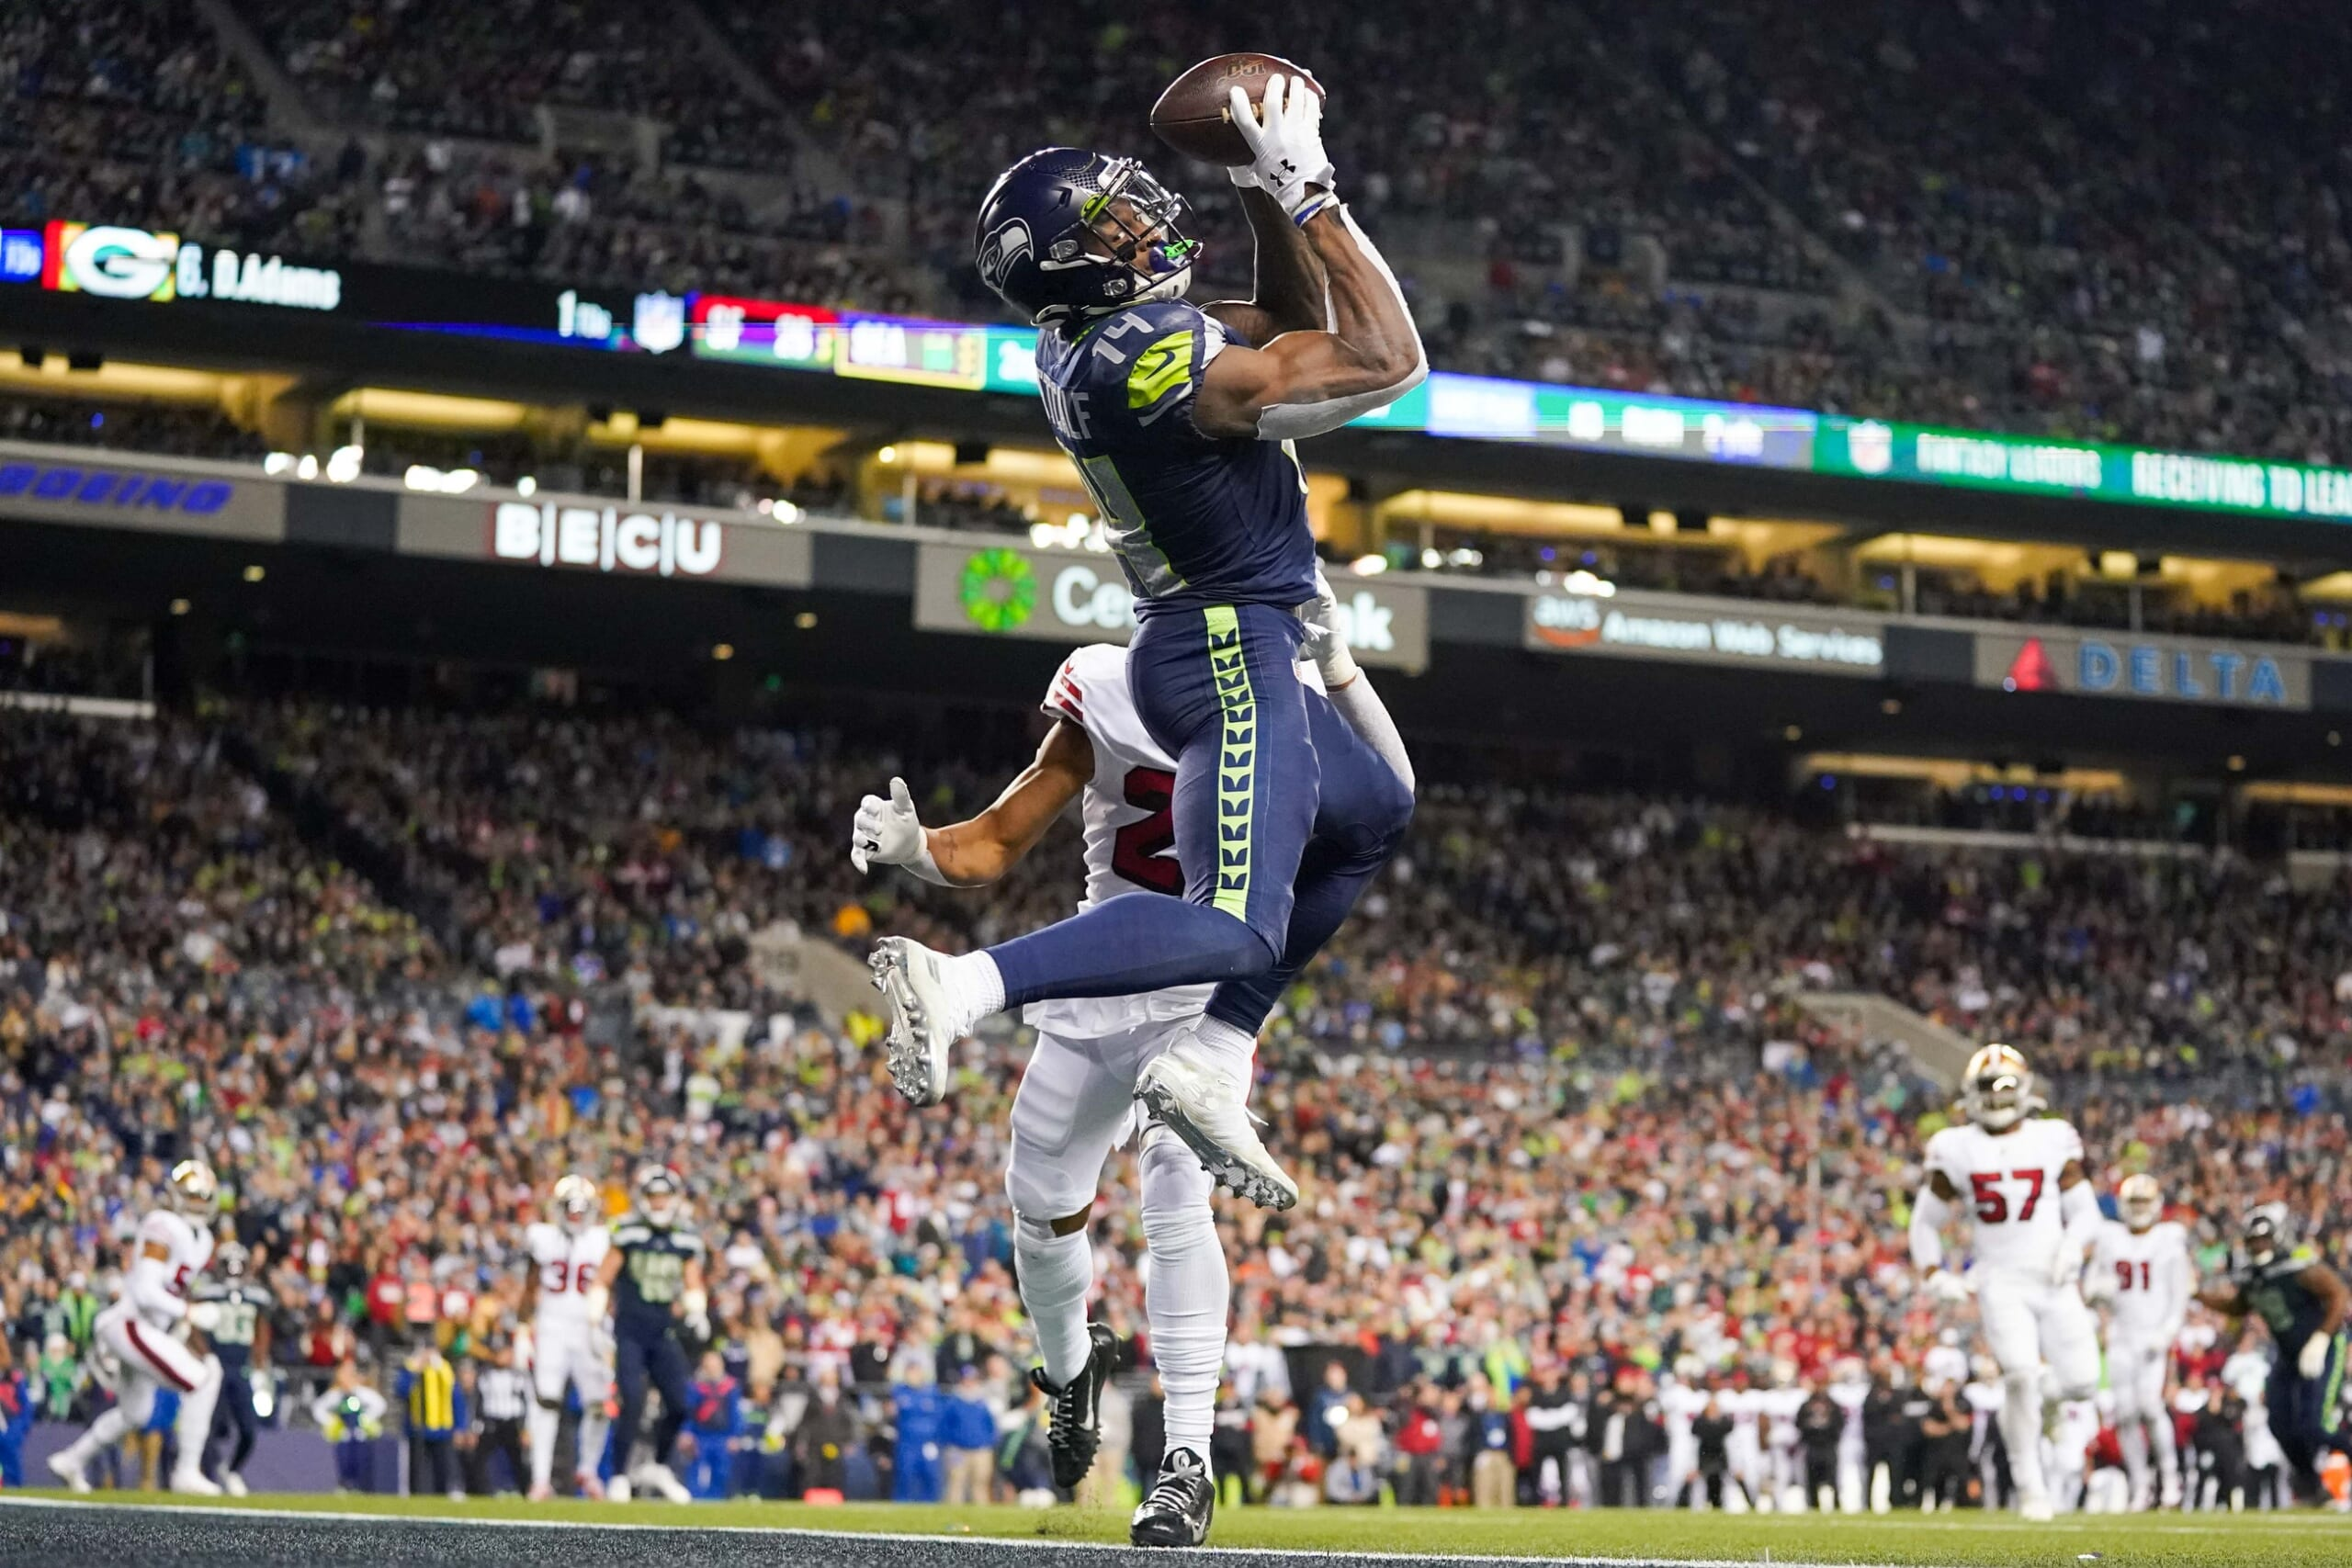 Watch Seahawks D K Metcalf Shows Off Insane Hops On Hurdle Jumps Sportsnaut